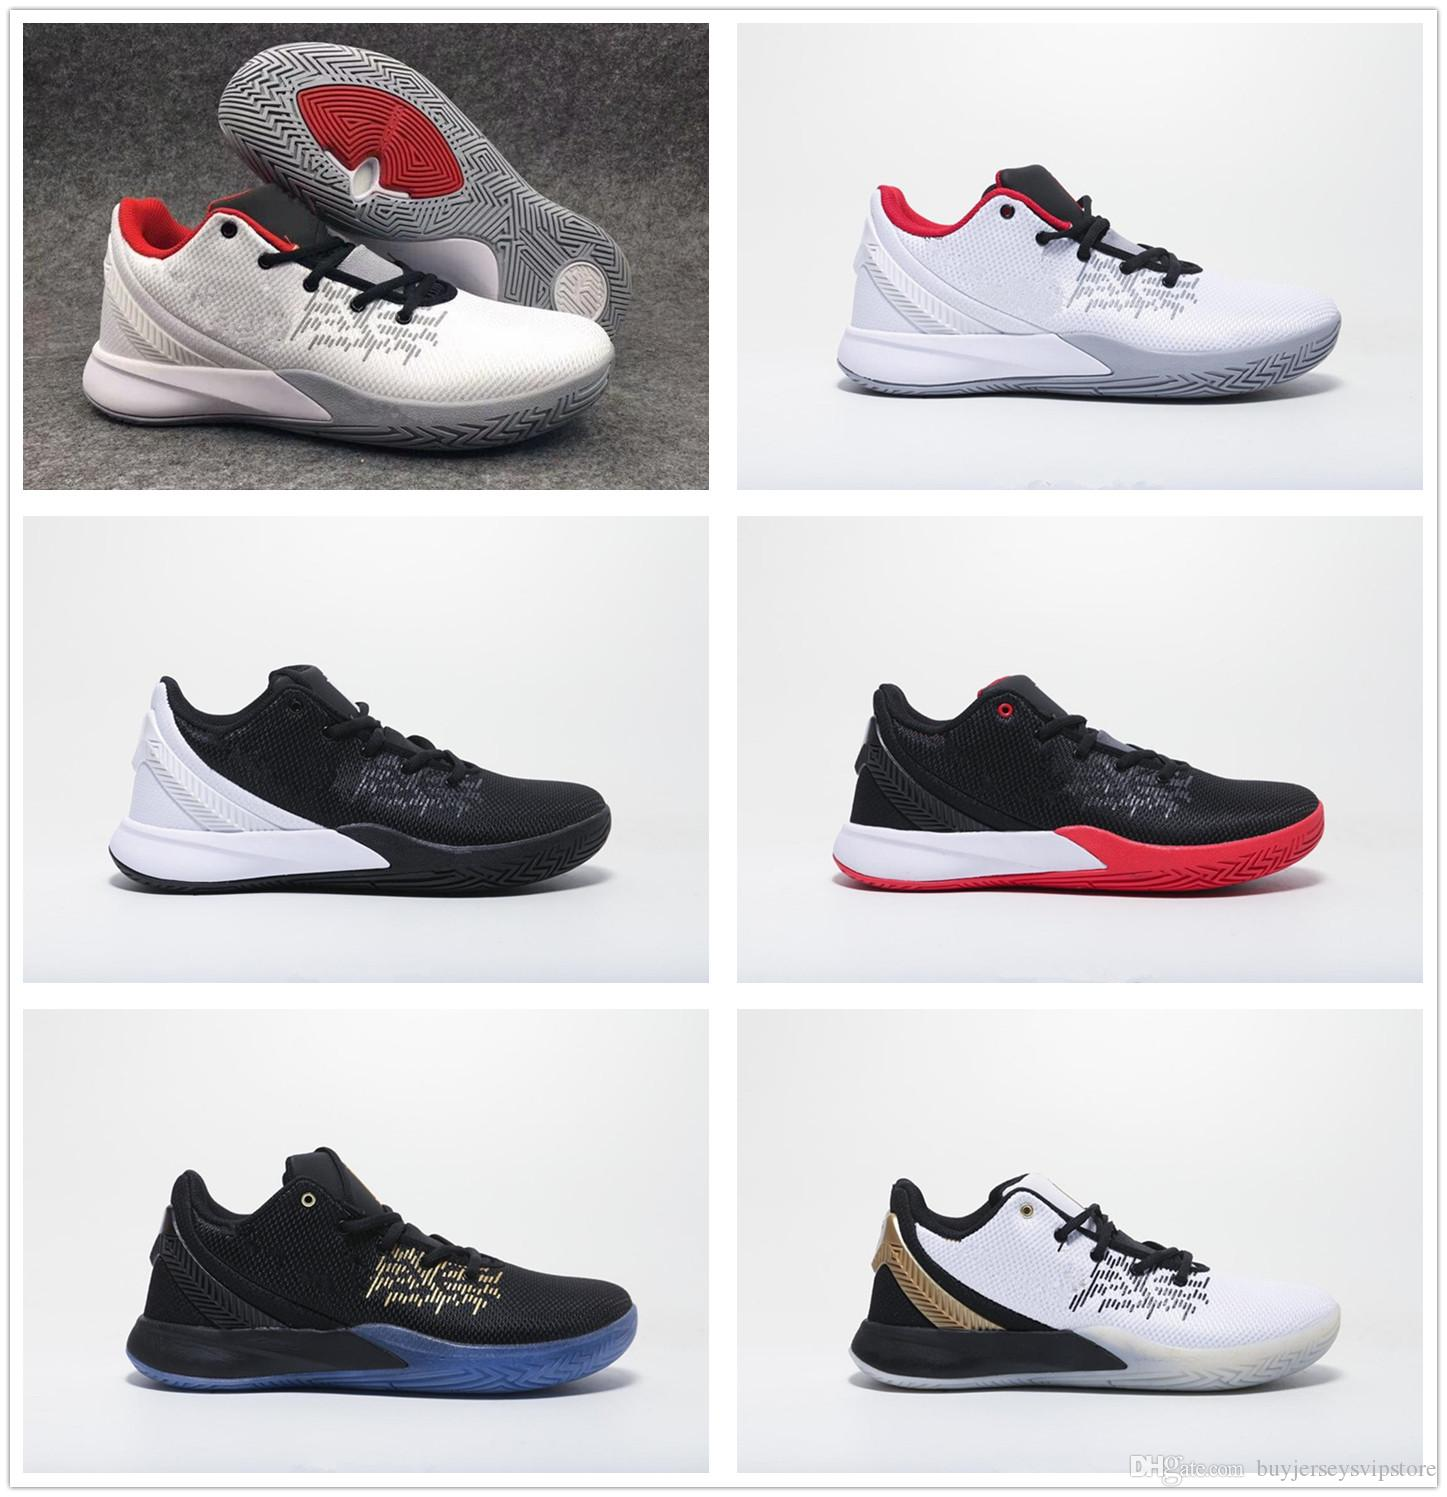 best cheap 9b034 51c28 2019 New Kyrie Flytrap 2 Shoes Irving 2 for Cheap Sale Sneakers Sports  Kyrie Mens Shoes size us7-us12